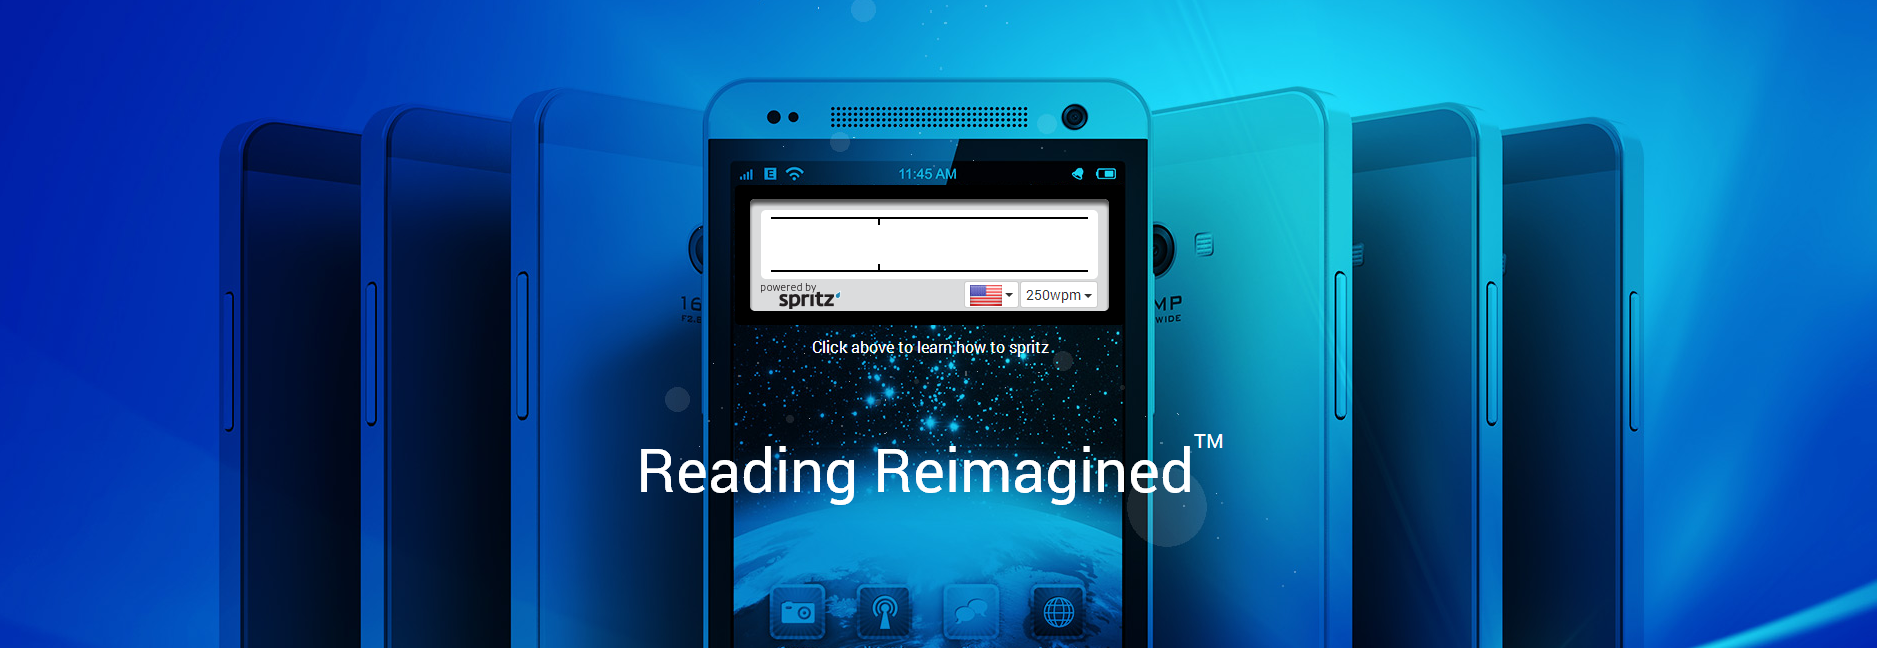 Spritz speed reading app